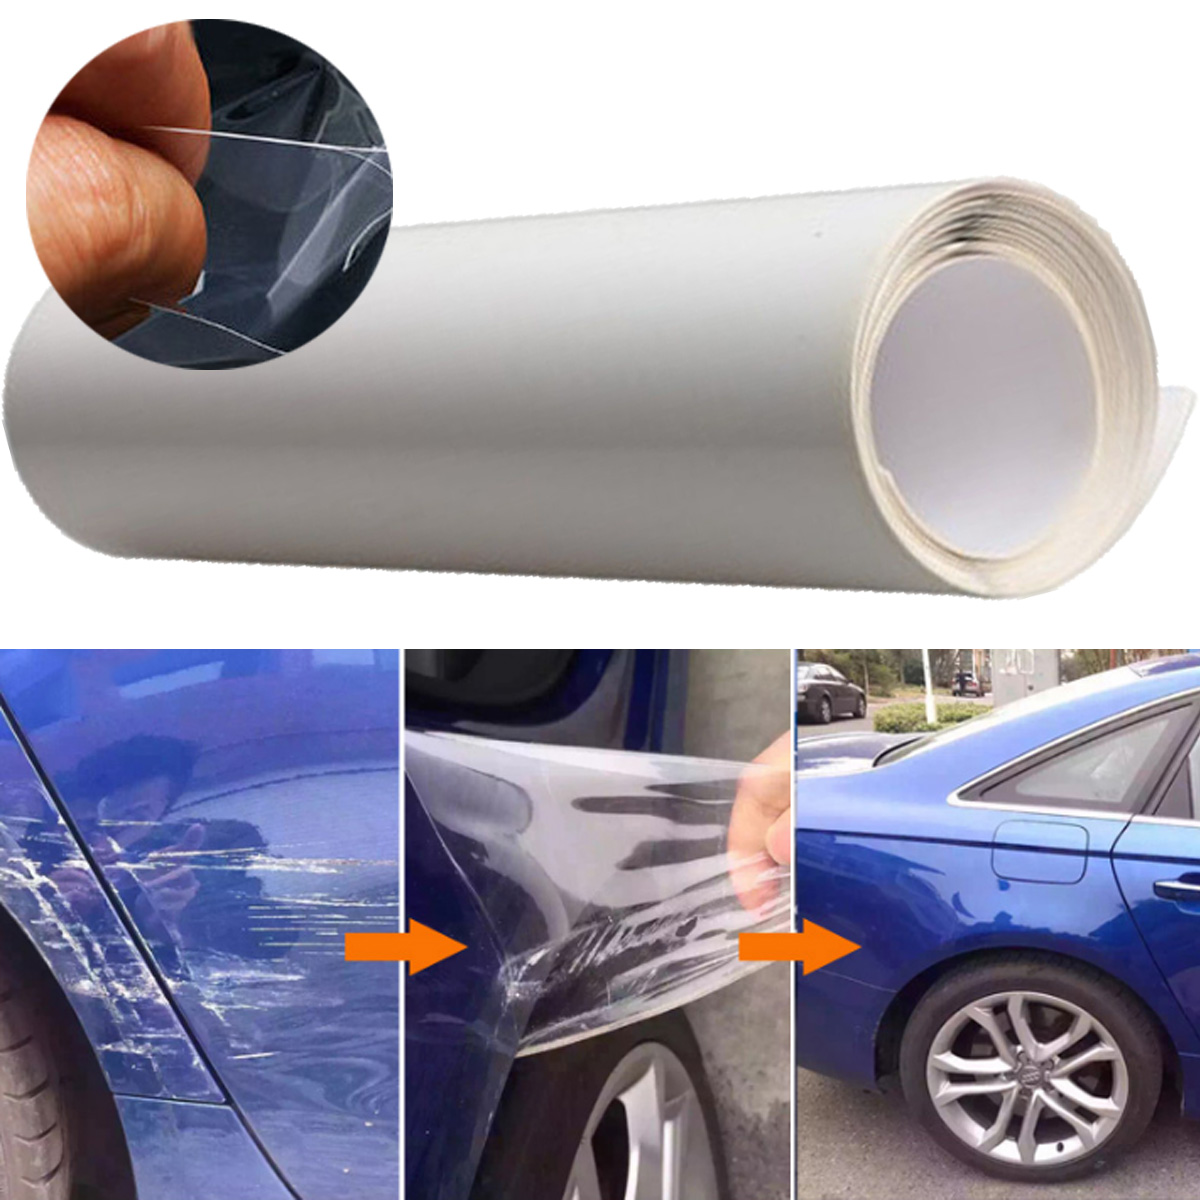 40x200cm Car Door Edge Protective Wrap Guard Film Transparent Sticker Cover Coat - Clear